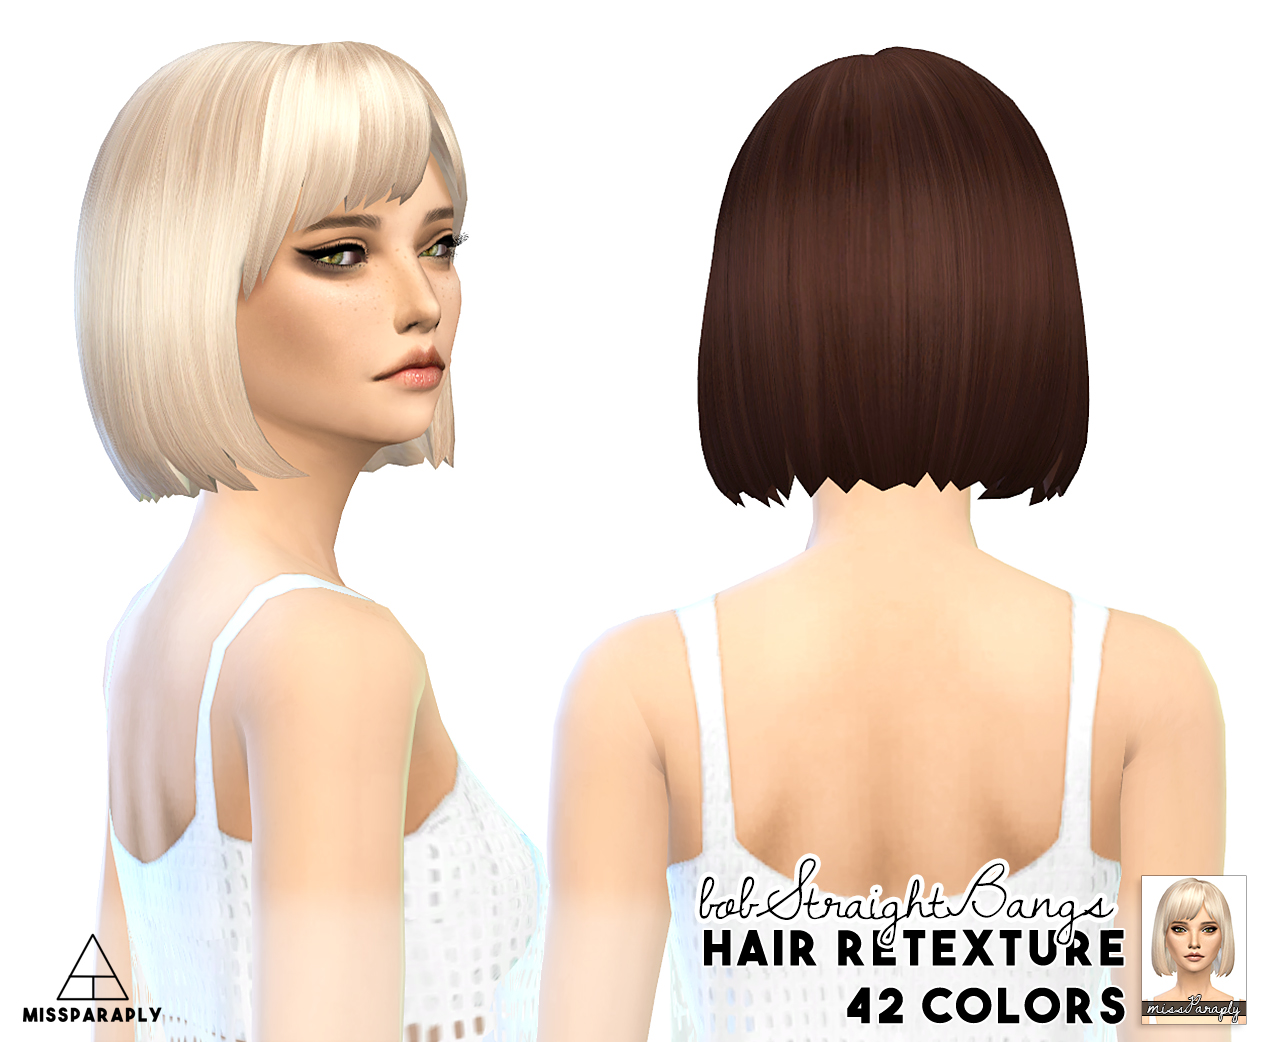 Short Curly Hair Sims 4 Hairs Picture Gallery